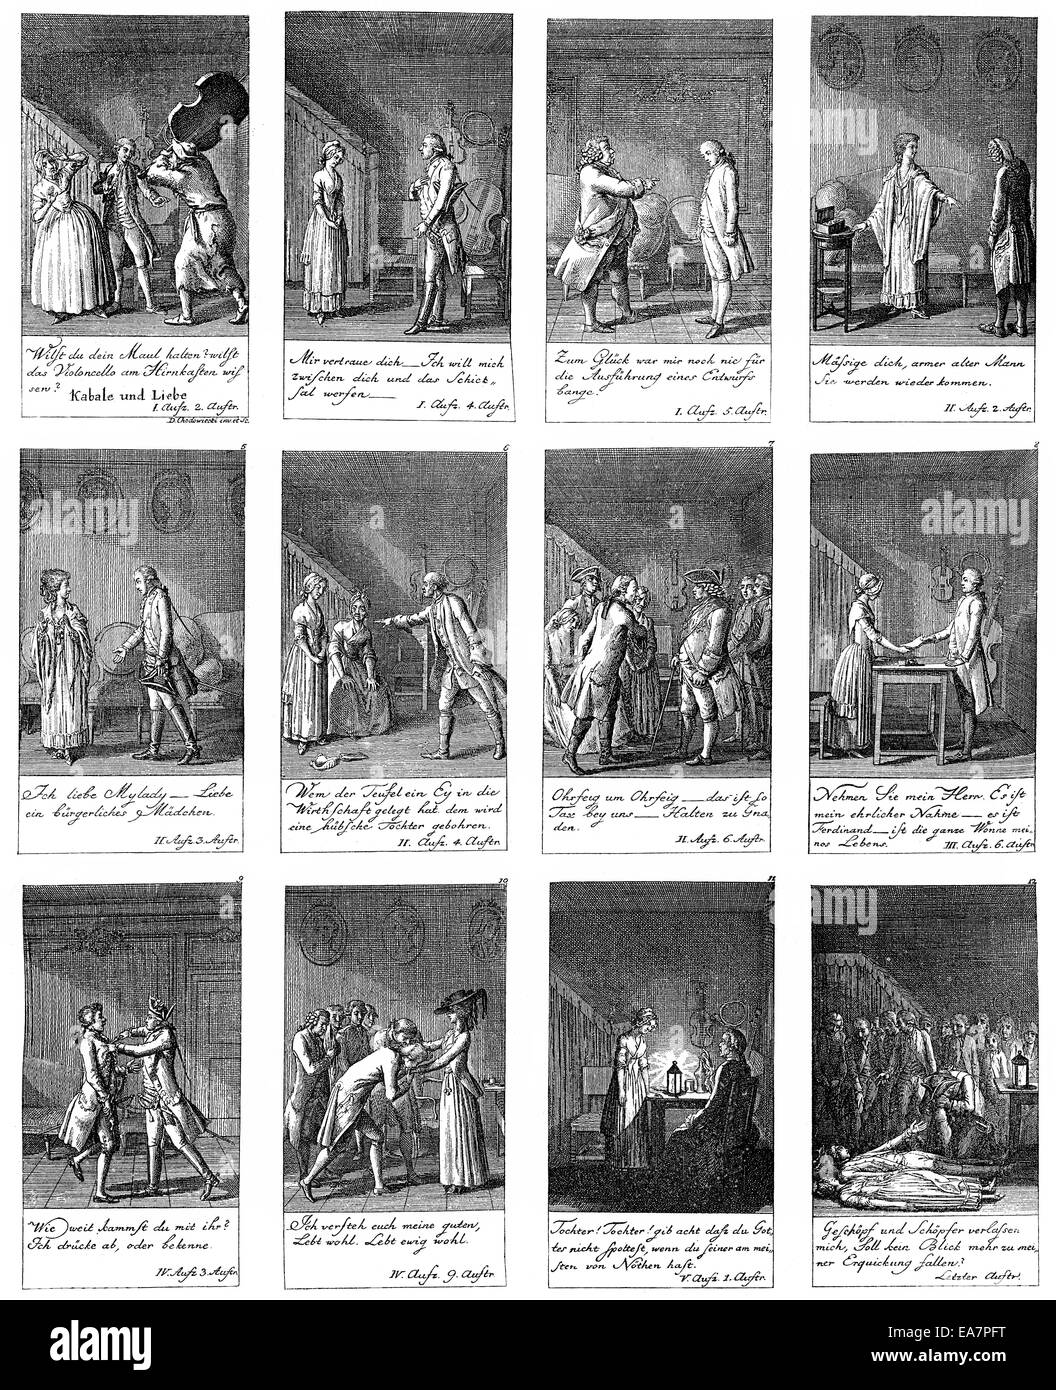 illustrations from Kabale und Liebe, Love and Intrigue, 1786 by Johann Christoph Friedrich von Schiller, Historische - Stock Image